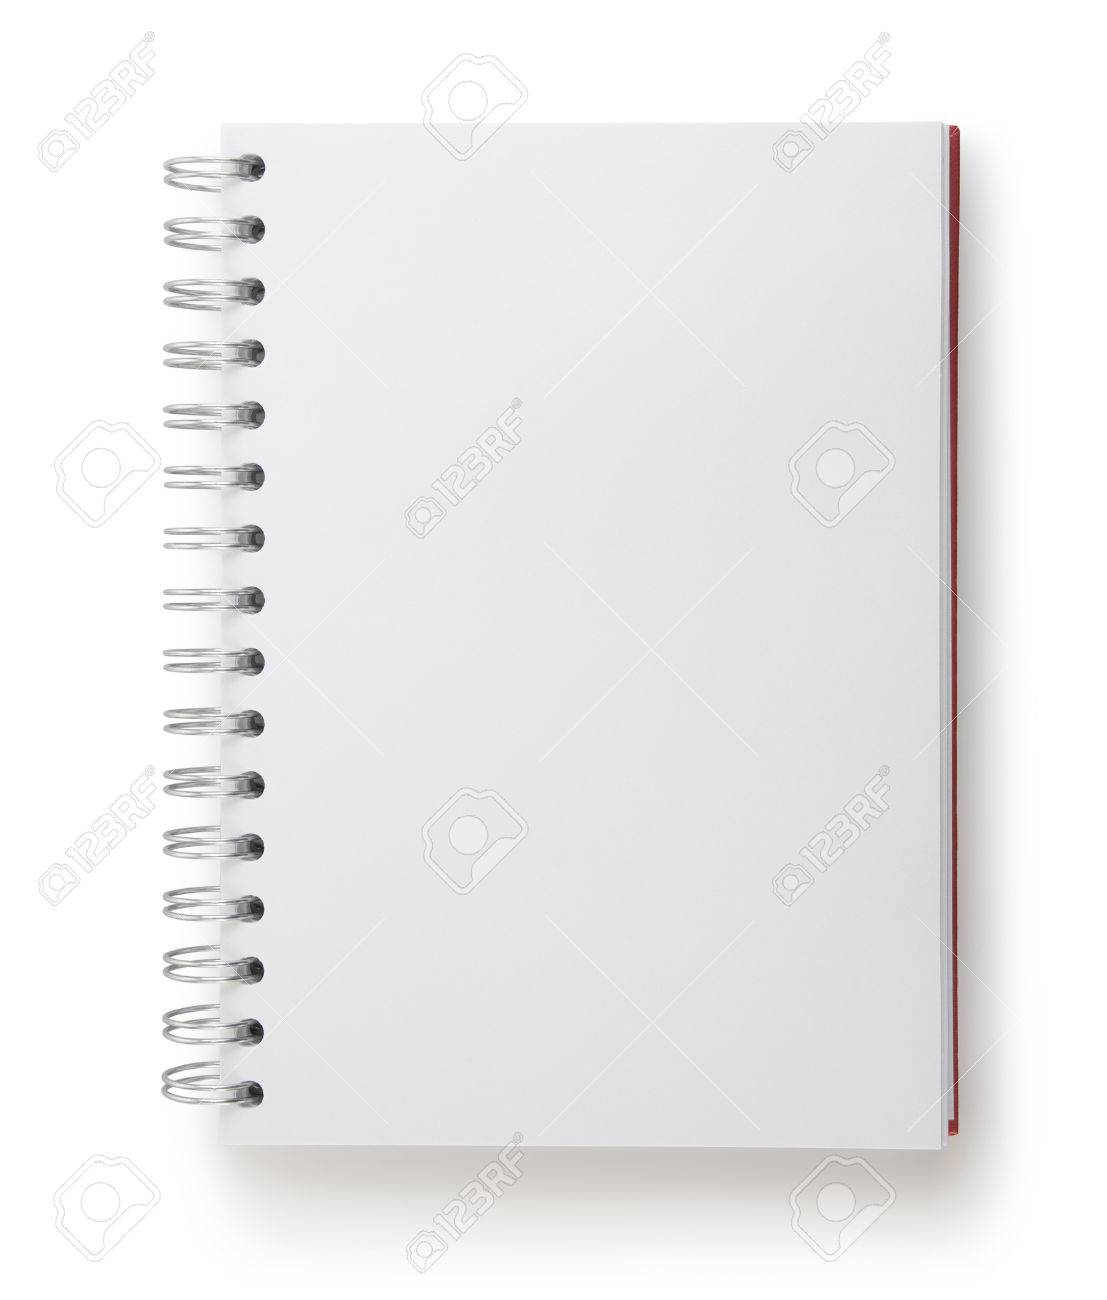 notepad with clipping path - 41328566